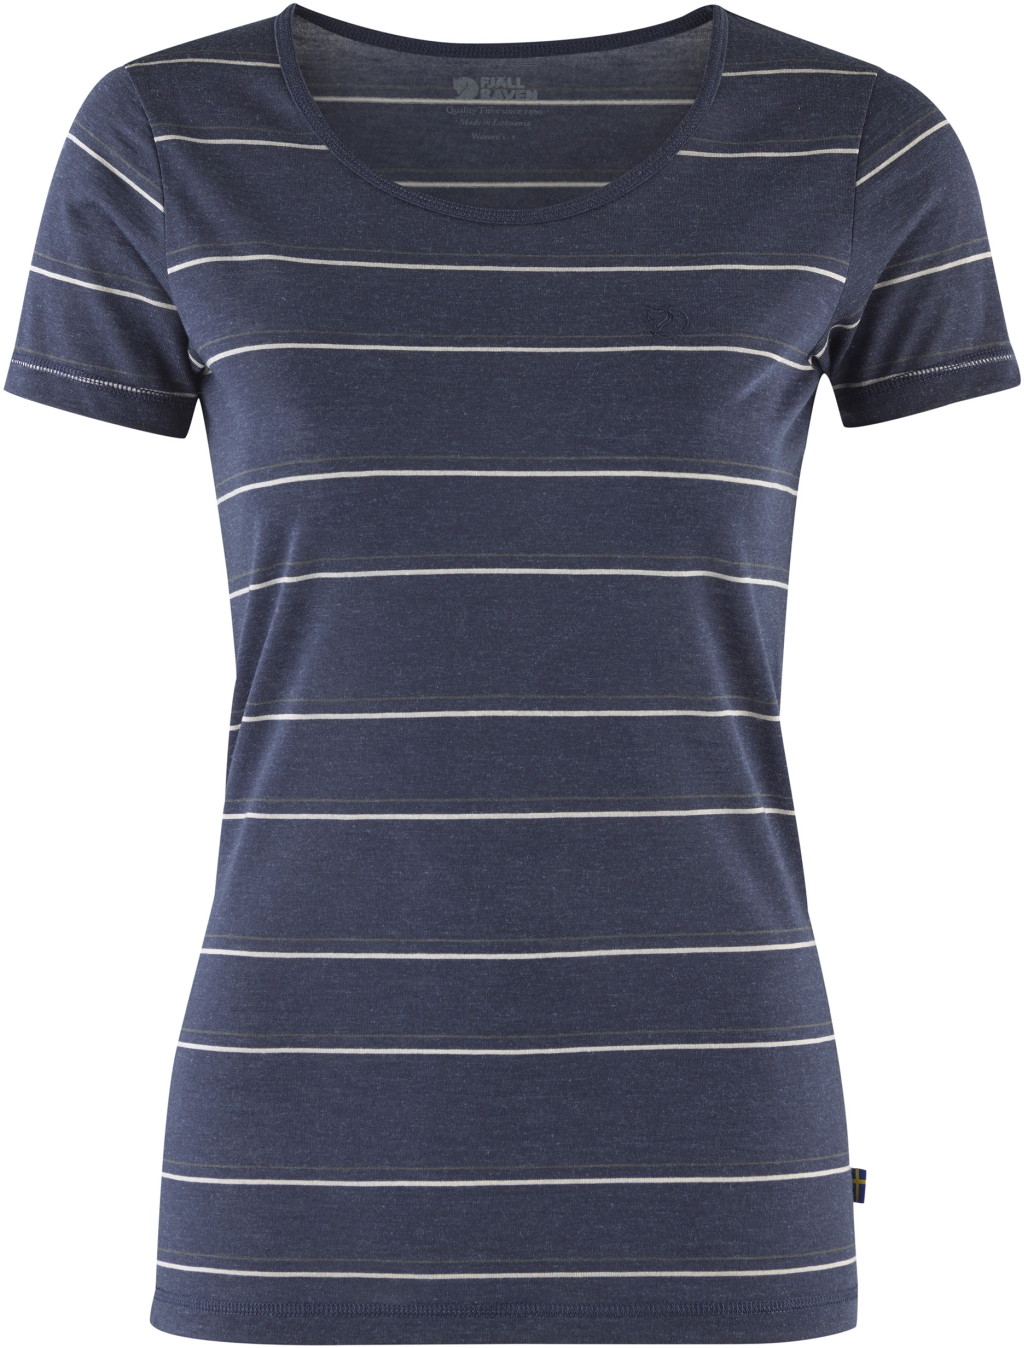 FjallRaven High Coast Stripe T-Shirt W Ash Grey-30